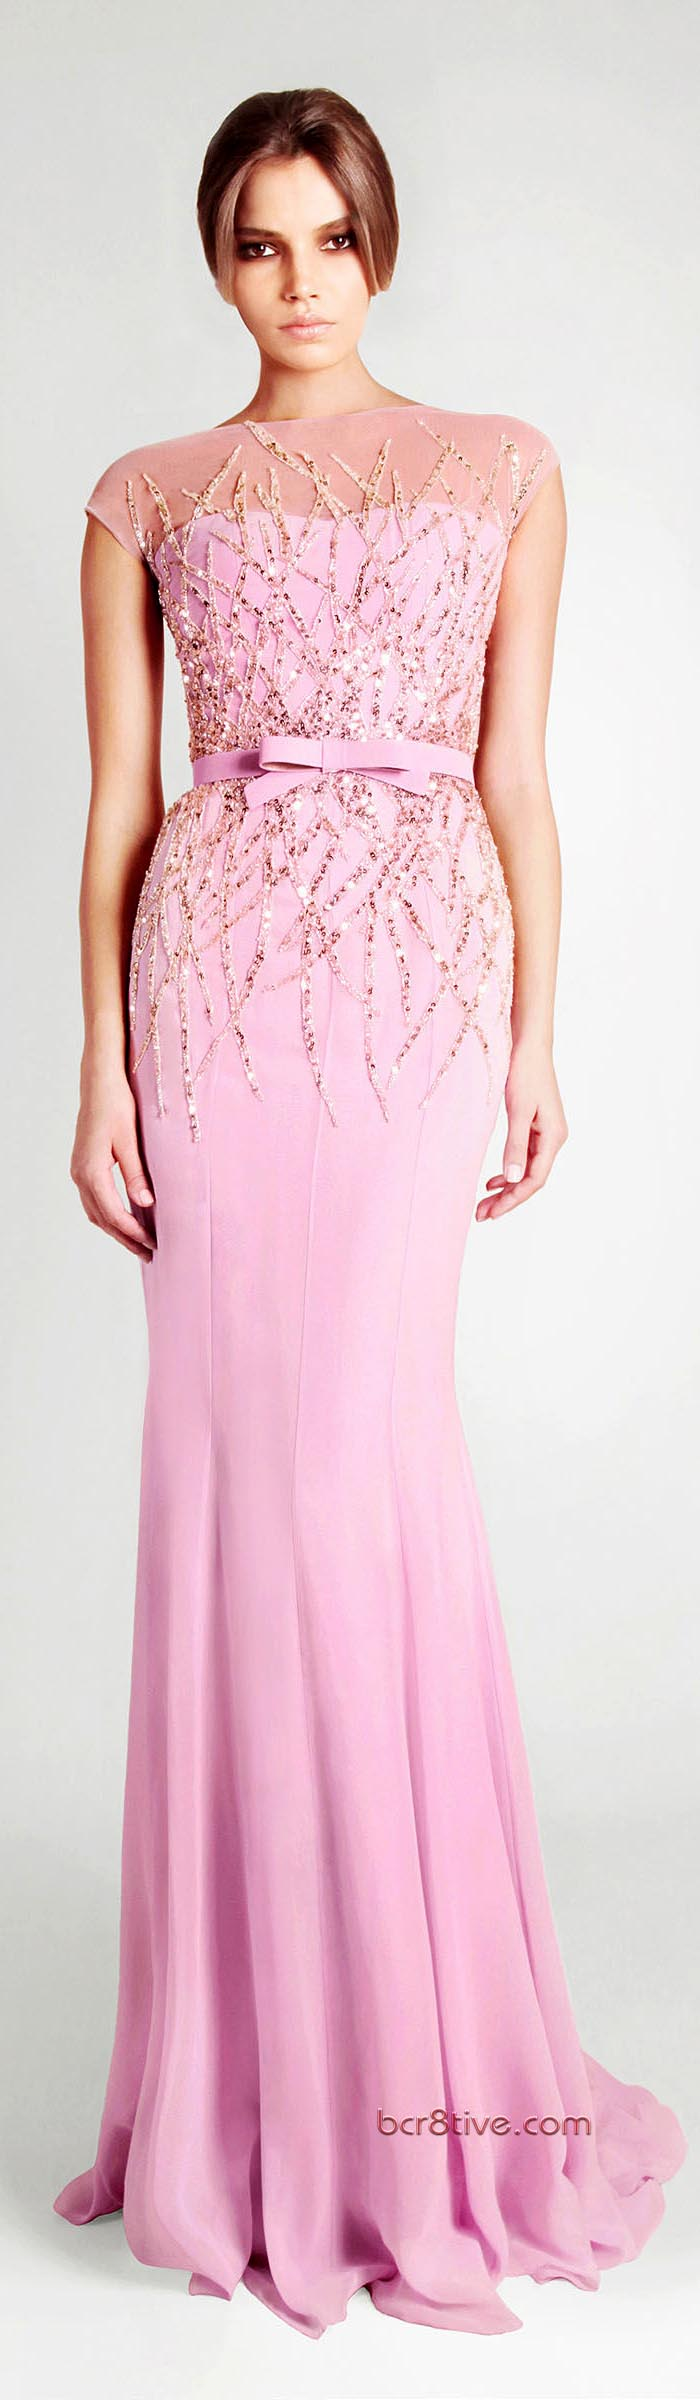 Georges Hobeika Ready to Wear Signature Spring Summer 2013